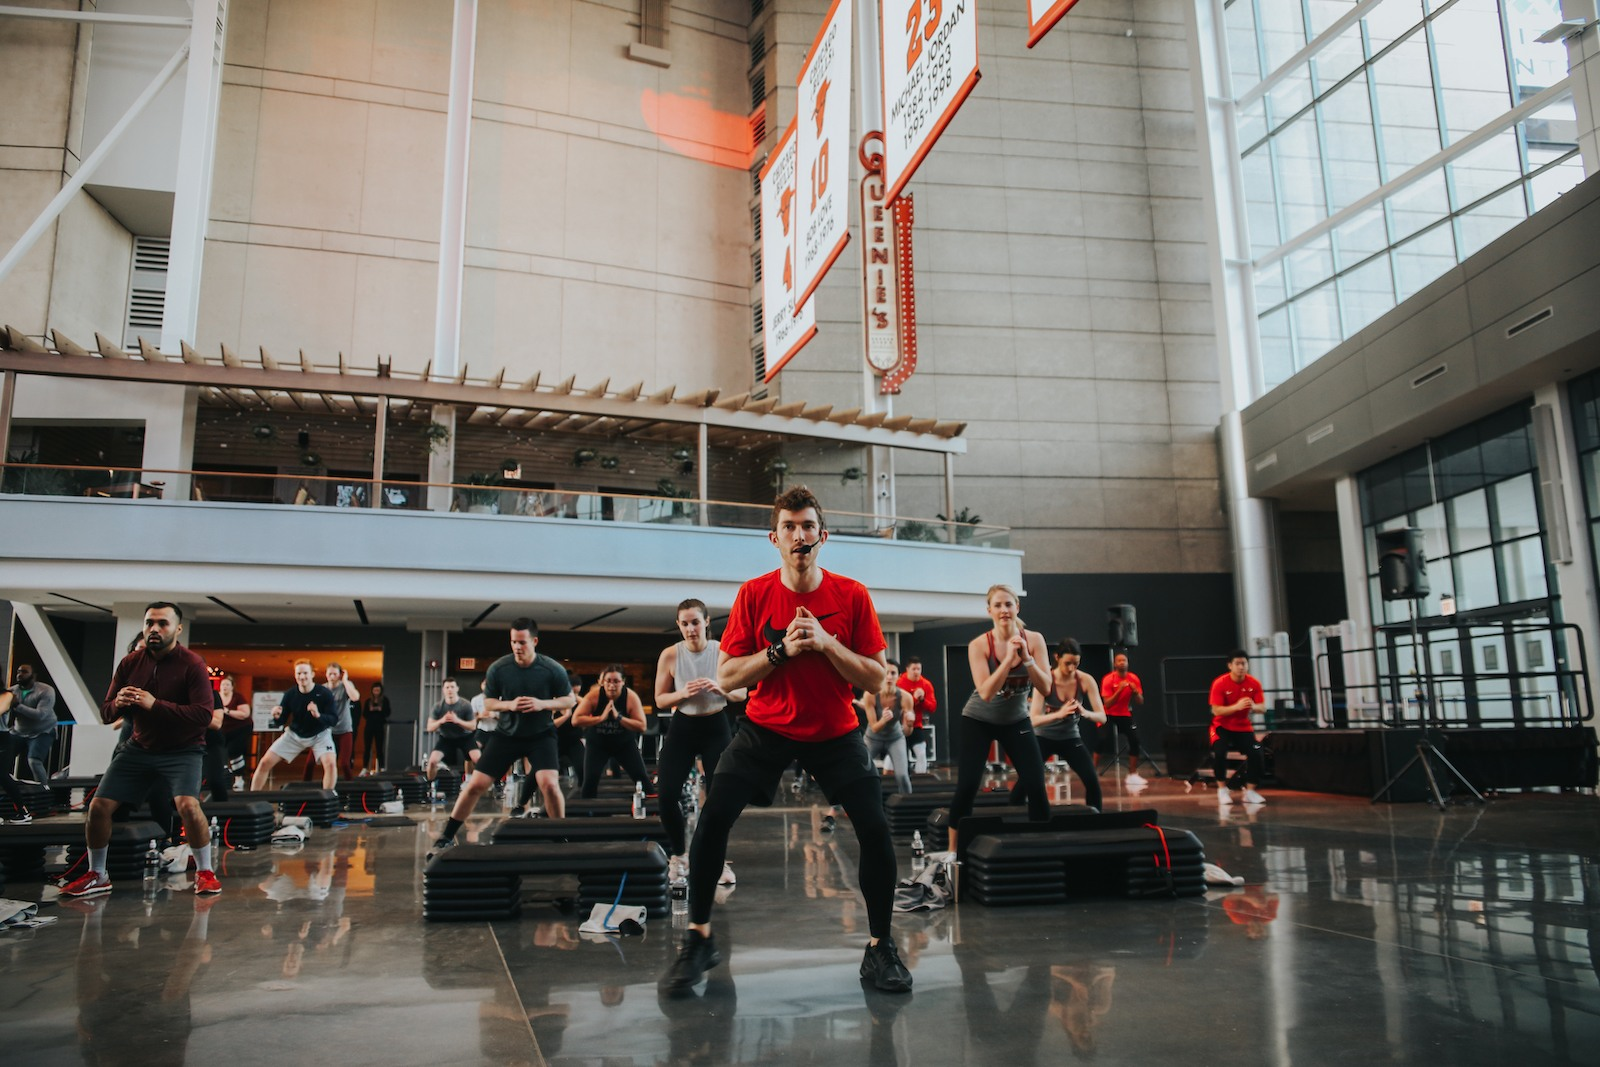 Barry's Bootcamp instructor in red t-shirt leading class in the United Center Atrium in Chicago